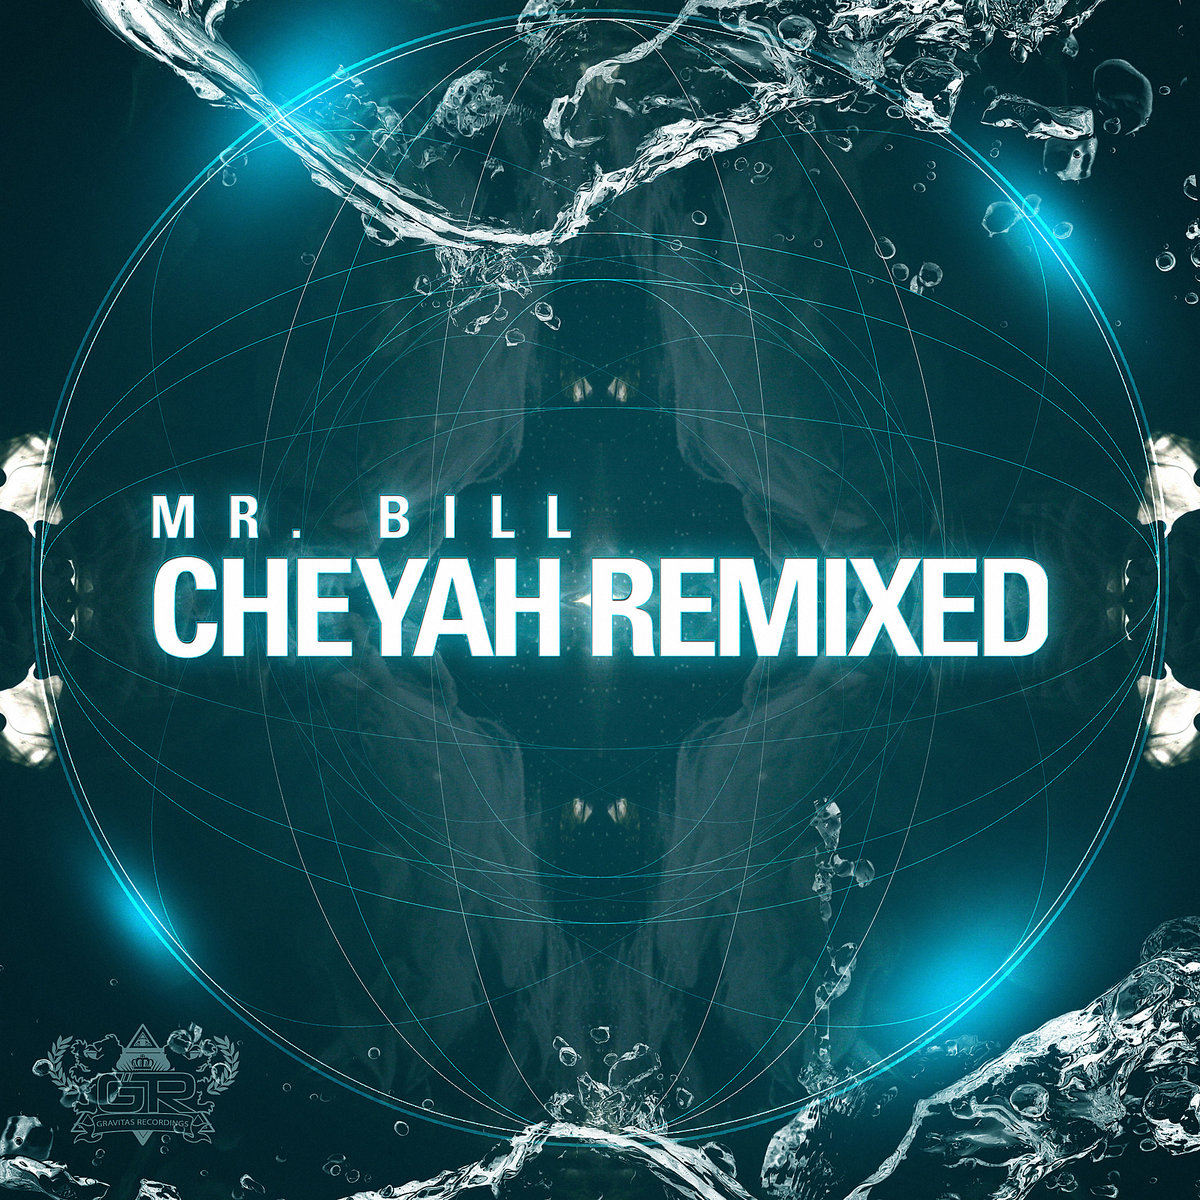 Mr. Bill - Cheyah (CloZee Remix) @ 'Cheyah Remixed' album (australia, idm)